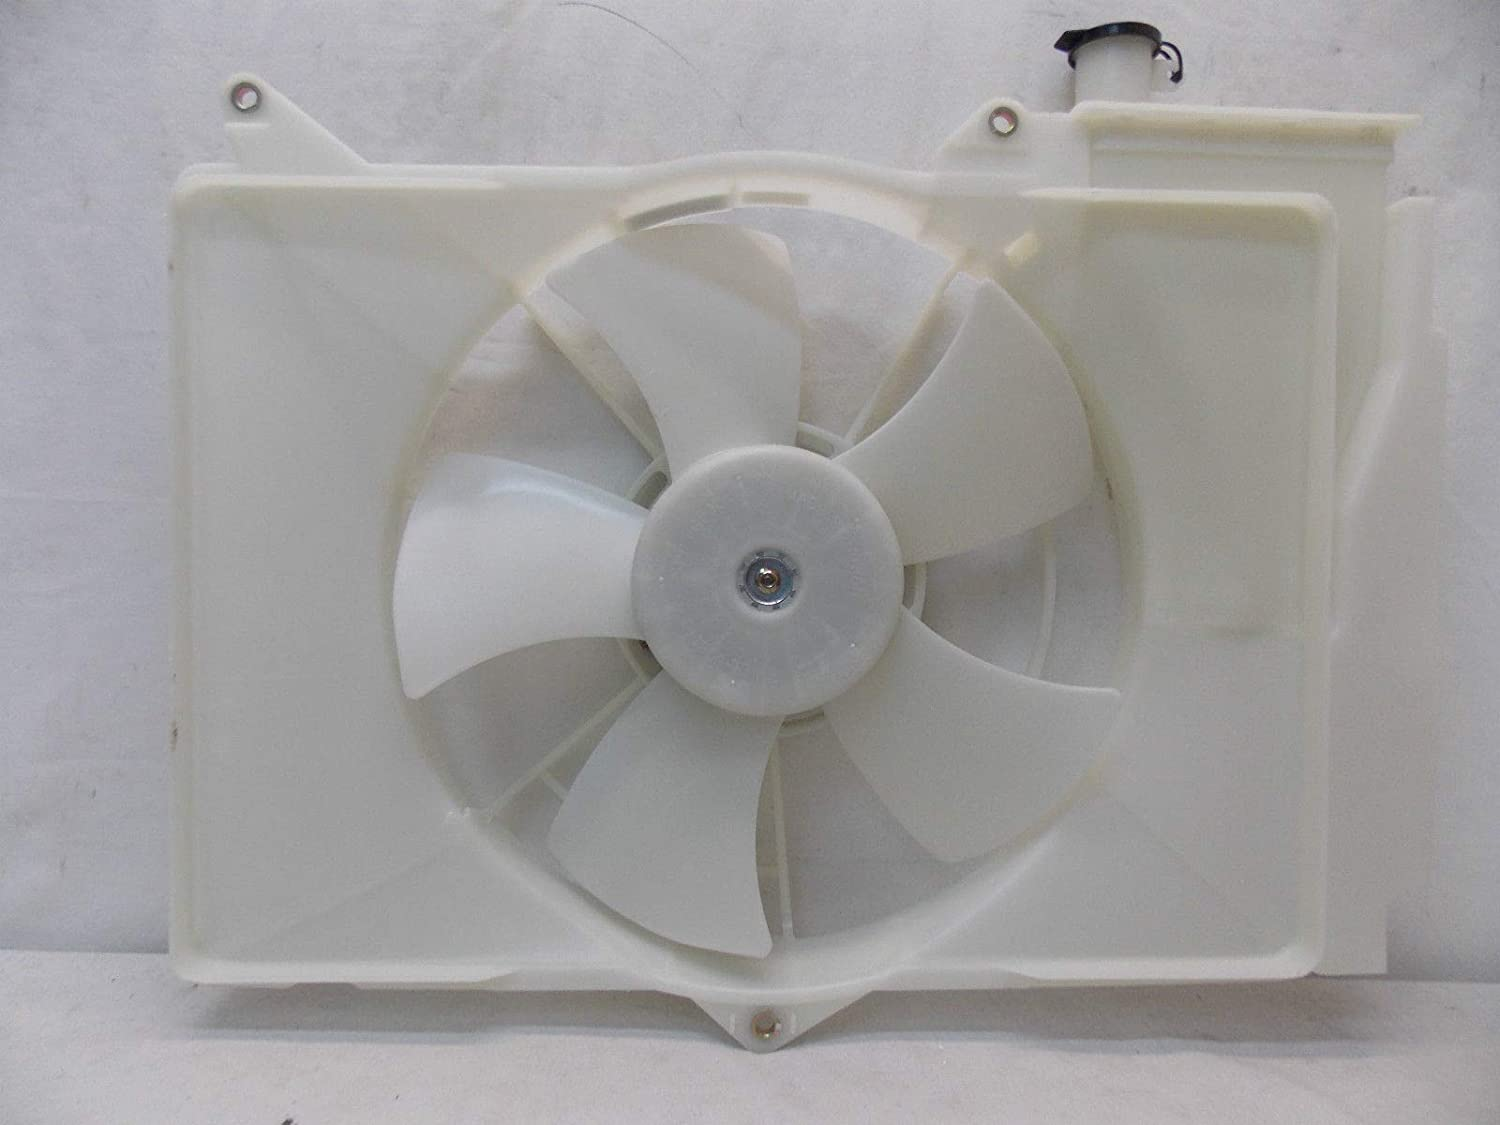 Sunbelt Radiator And Condenser Fan For Toyota Echo Scion xA TO3115119 Drop in Fitment